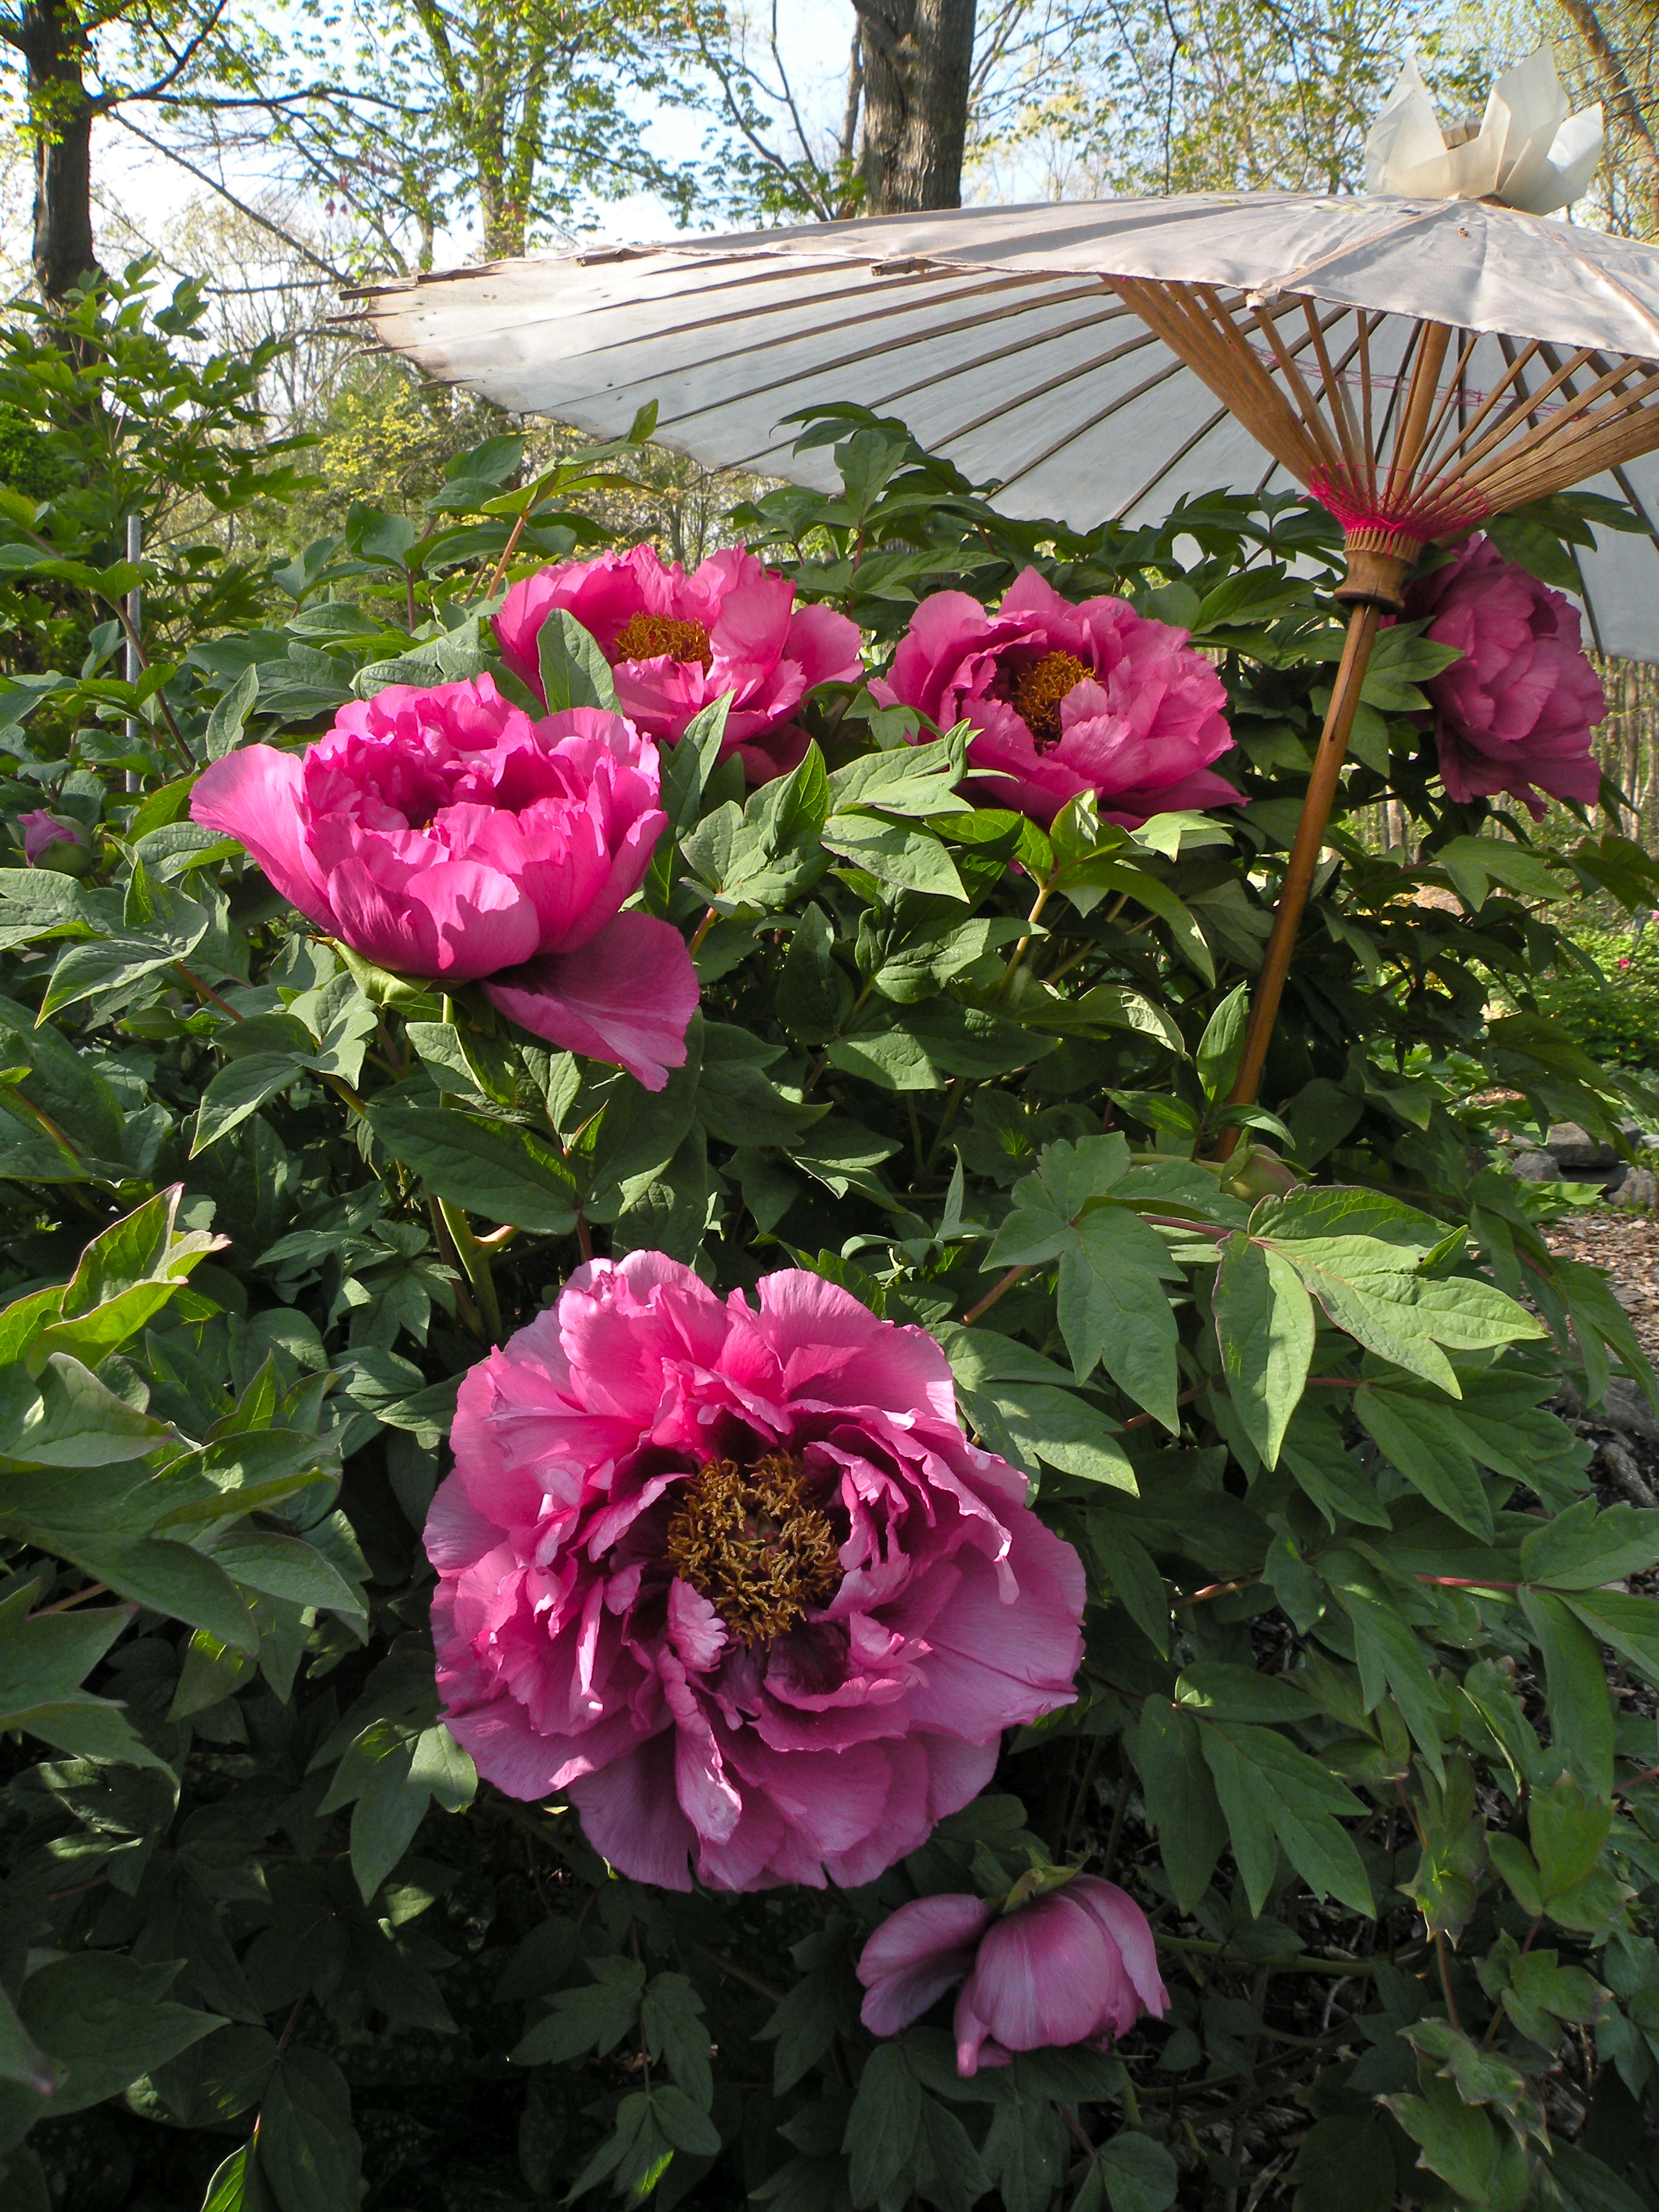 Where to see peonies in bloom crickethillgarden for Garden design fest 2014